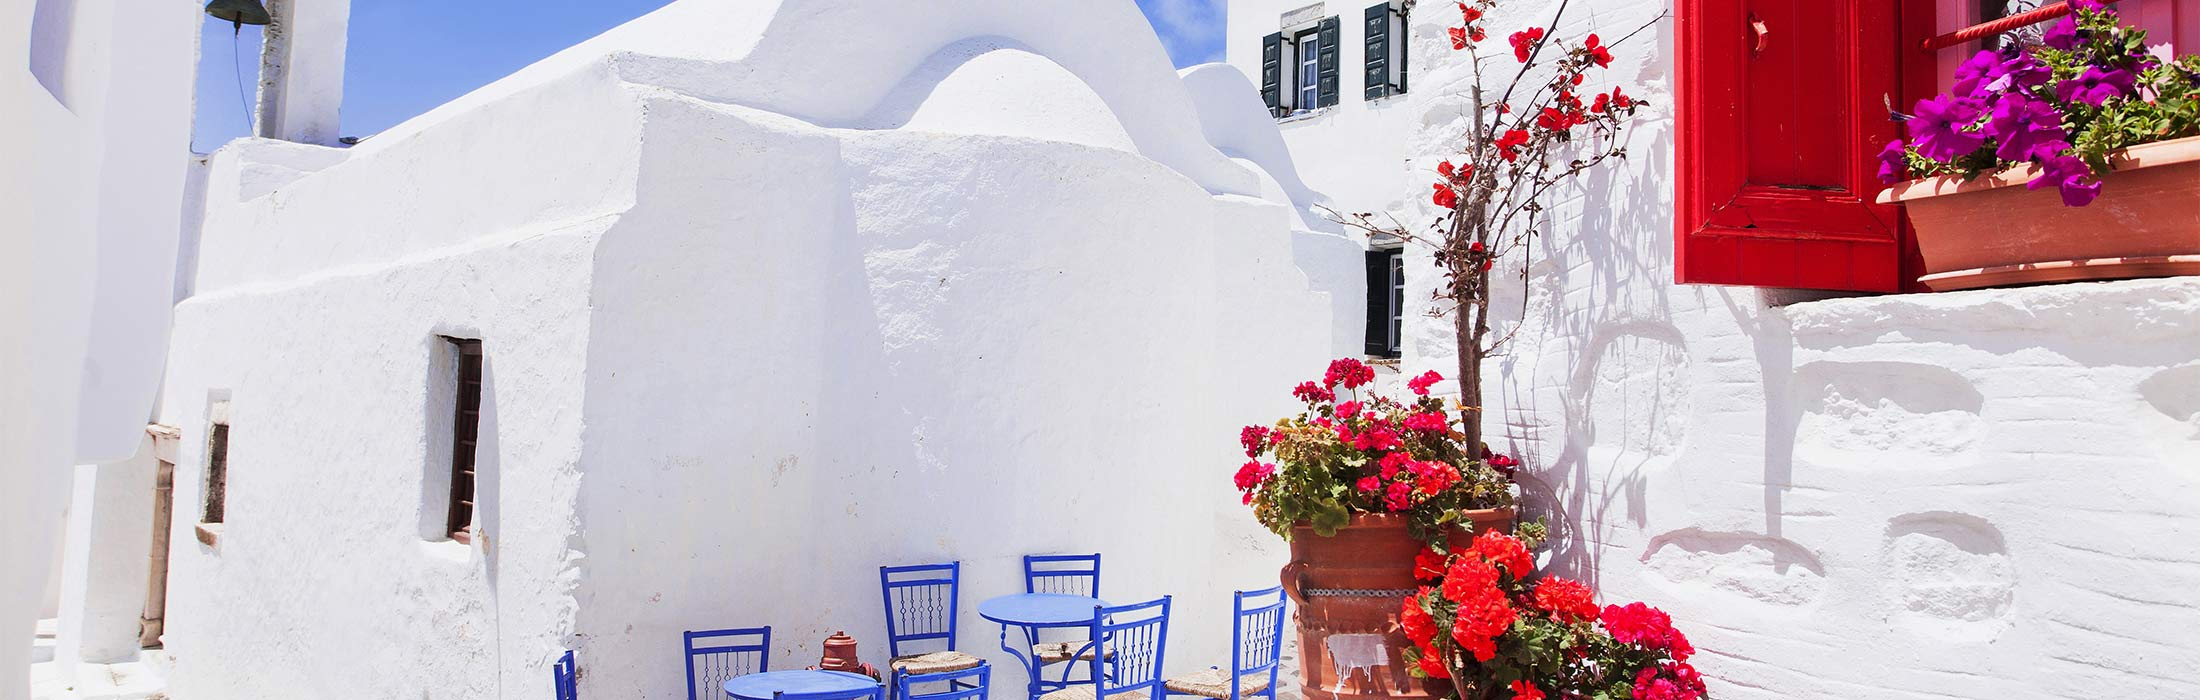 top yacht charter destinations mediterranean greece cyclades amorgos main slider 2